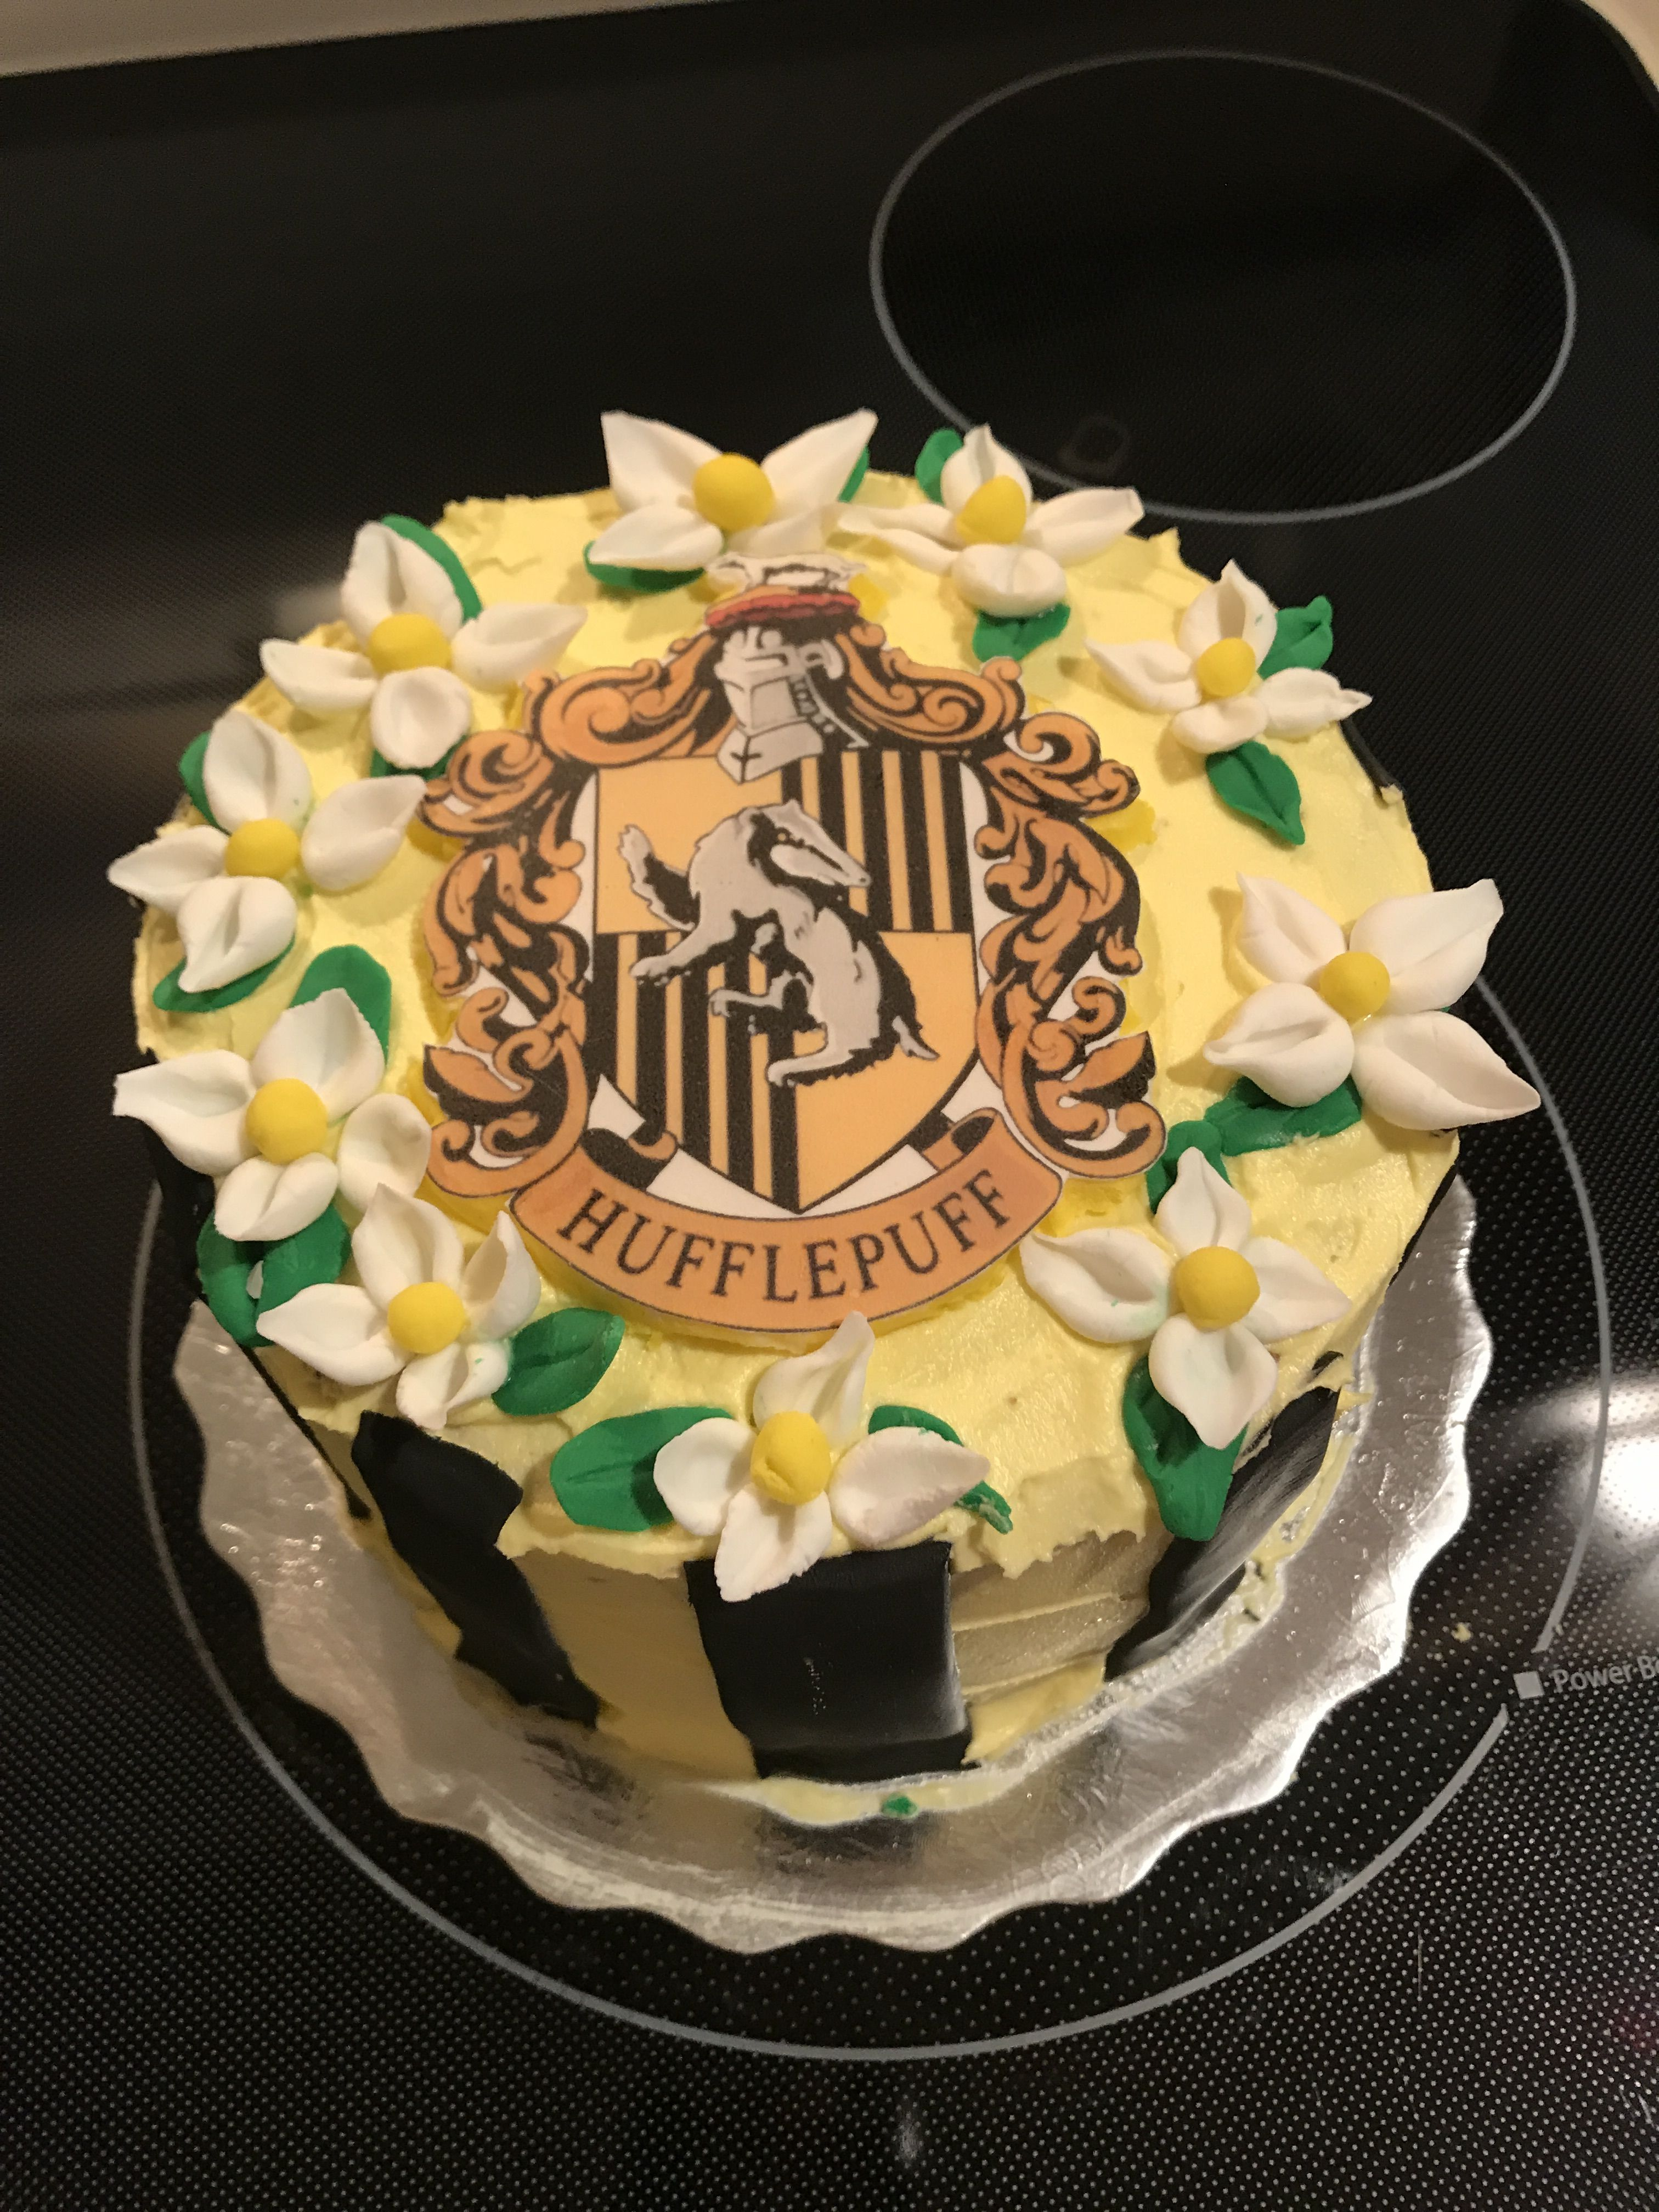 Made My Own Hufflepuff Cake With Images 14th Birthday Cakes